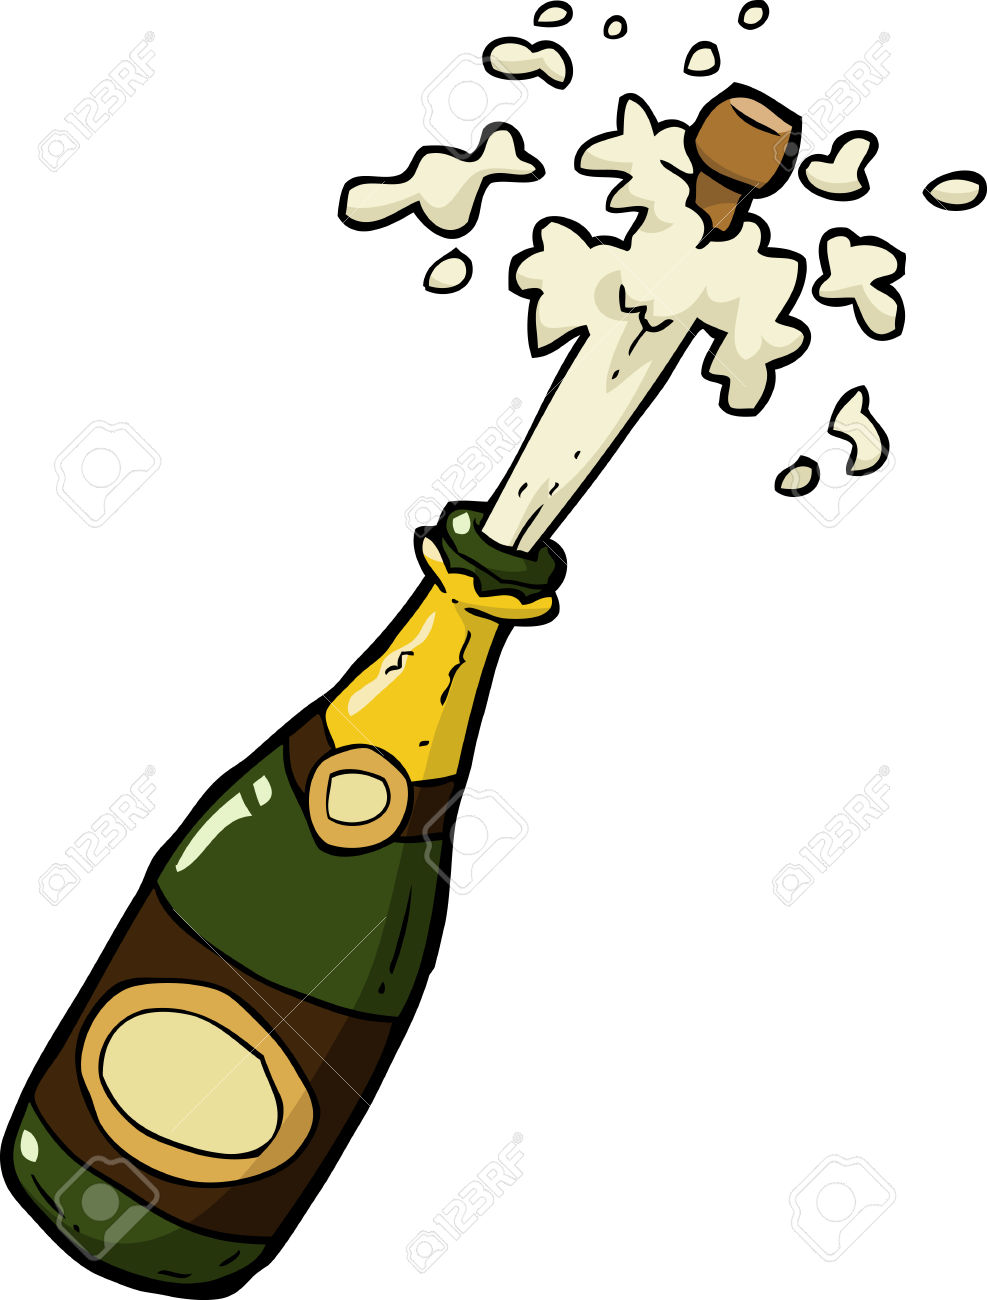 hight resolution of champagne bottle clipart free download jpg